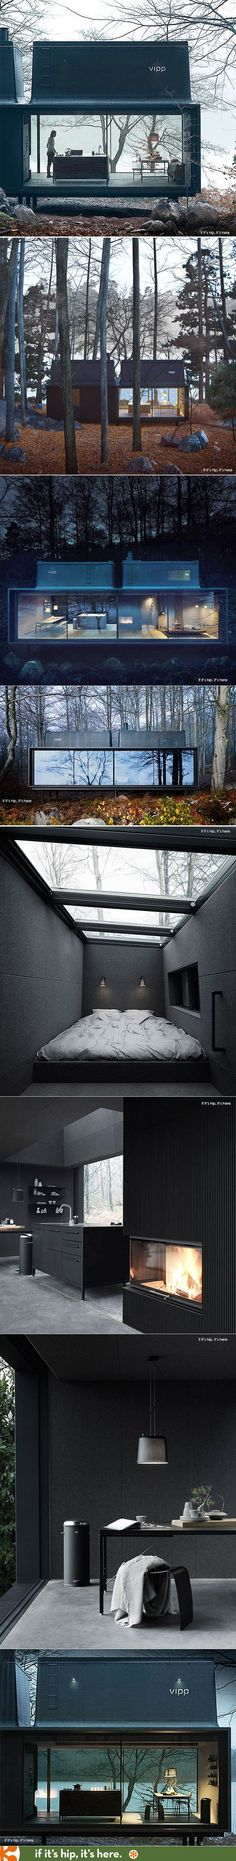 Container House - The Vipp Shelter Is A Prefab Structure Loaded With Vipp Products. Who Else Wants Simple Step-By-Step Plans To Design And Build A Container Home From Scratch? Architecture Design Concept, Interior Architecture, Architecture Tools, Container Architecture, Hotel Chalet, Future House, My House, Casas Containers, Building A Container Home